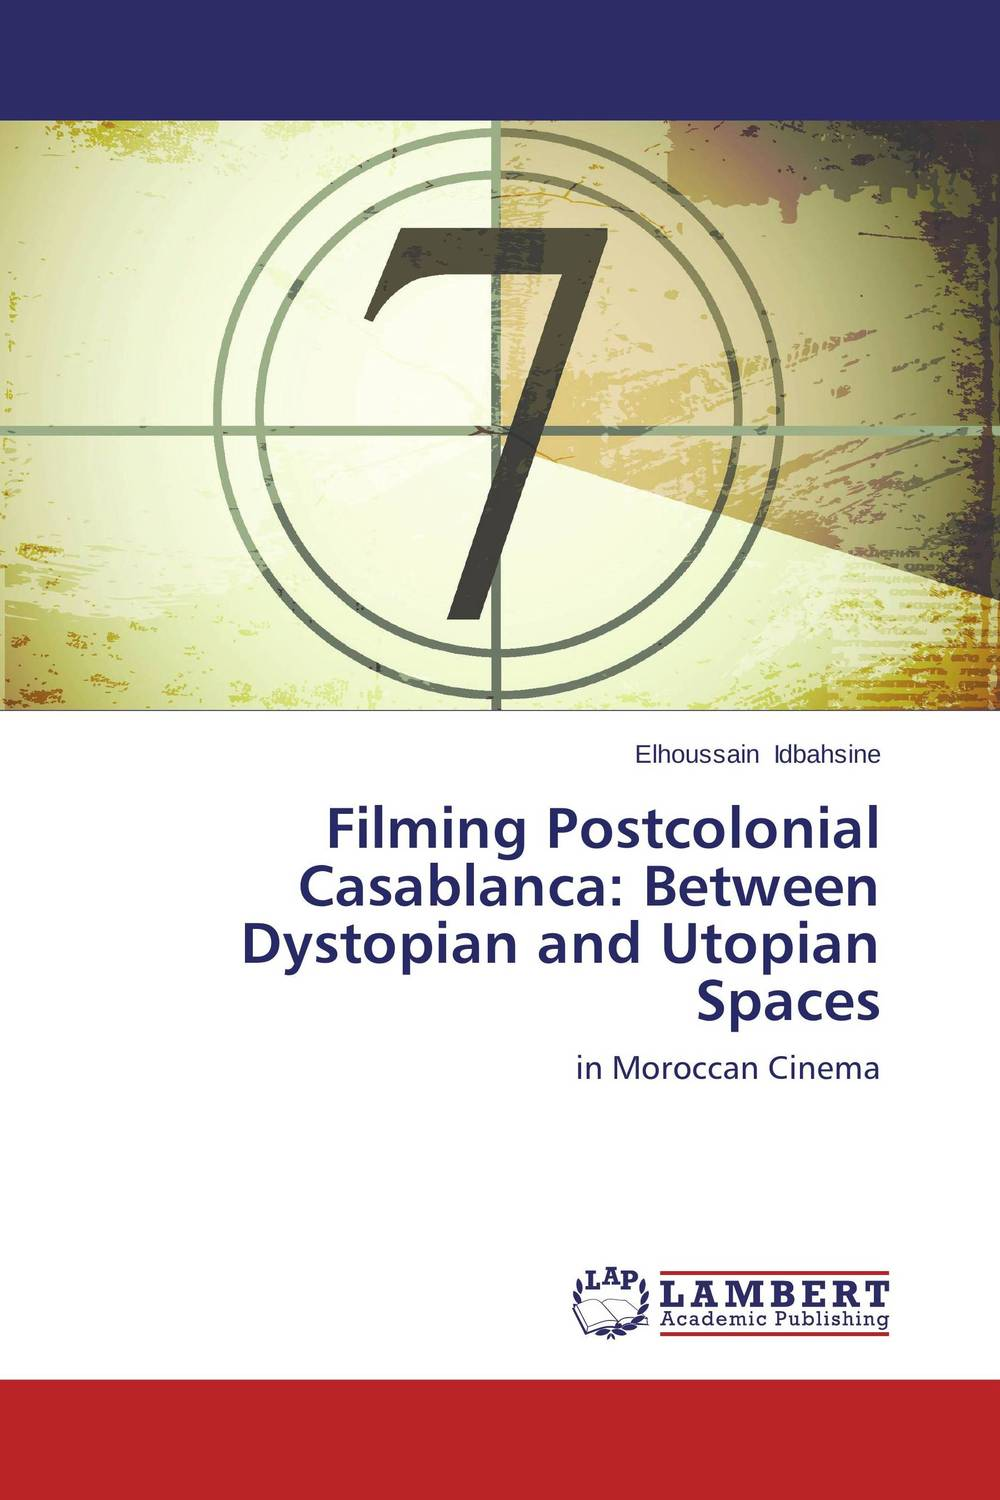 Filming Postcolonial Casablanca: Between Dystopian and Utopian Spaces chris wormell george and the dragon